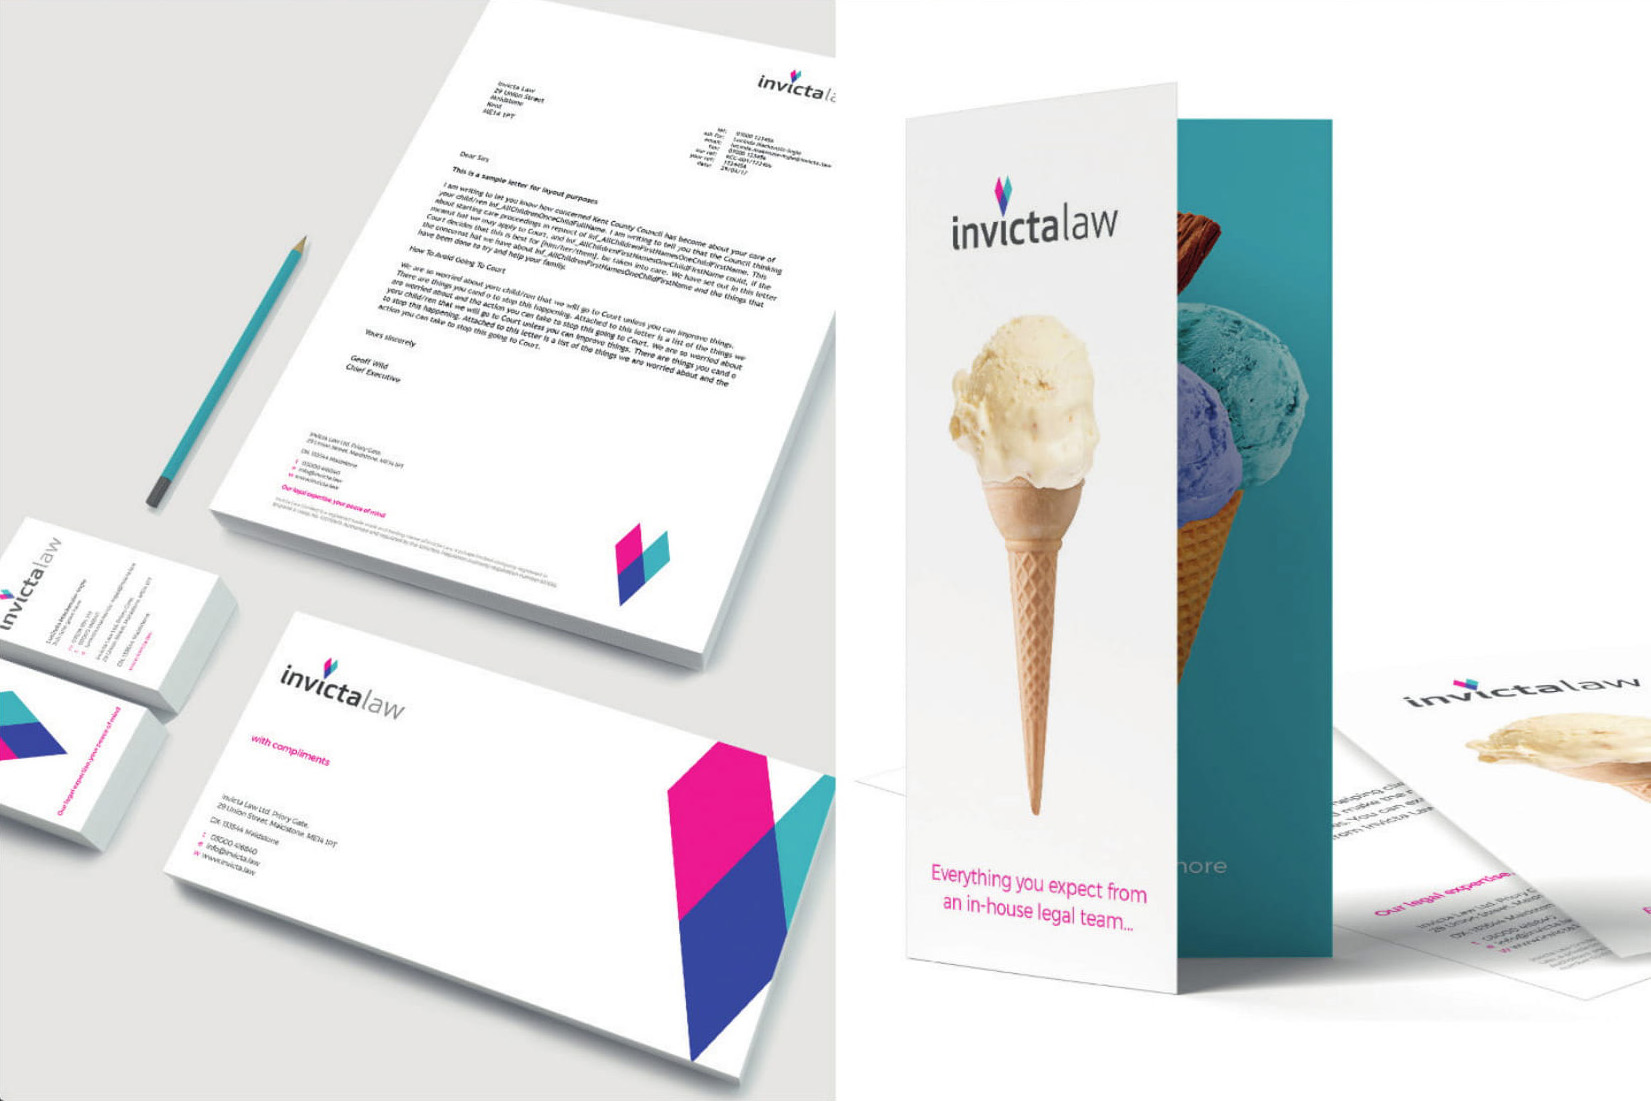 Invicta Law Brand Strategy | Muse Awards